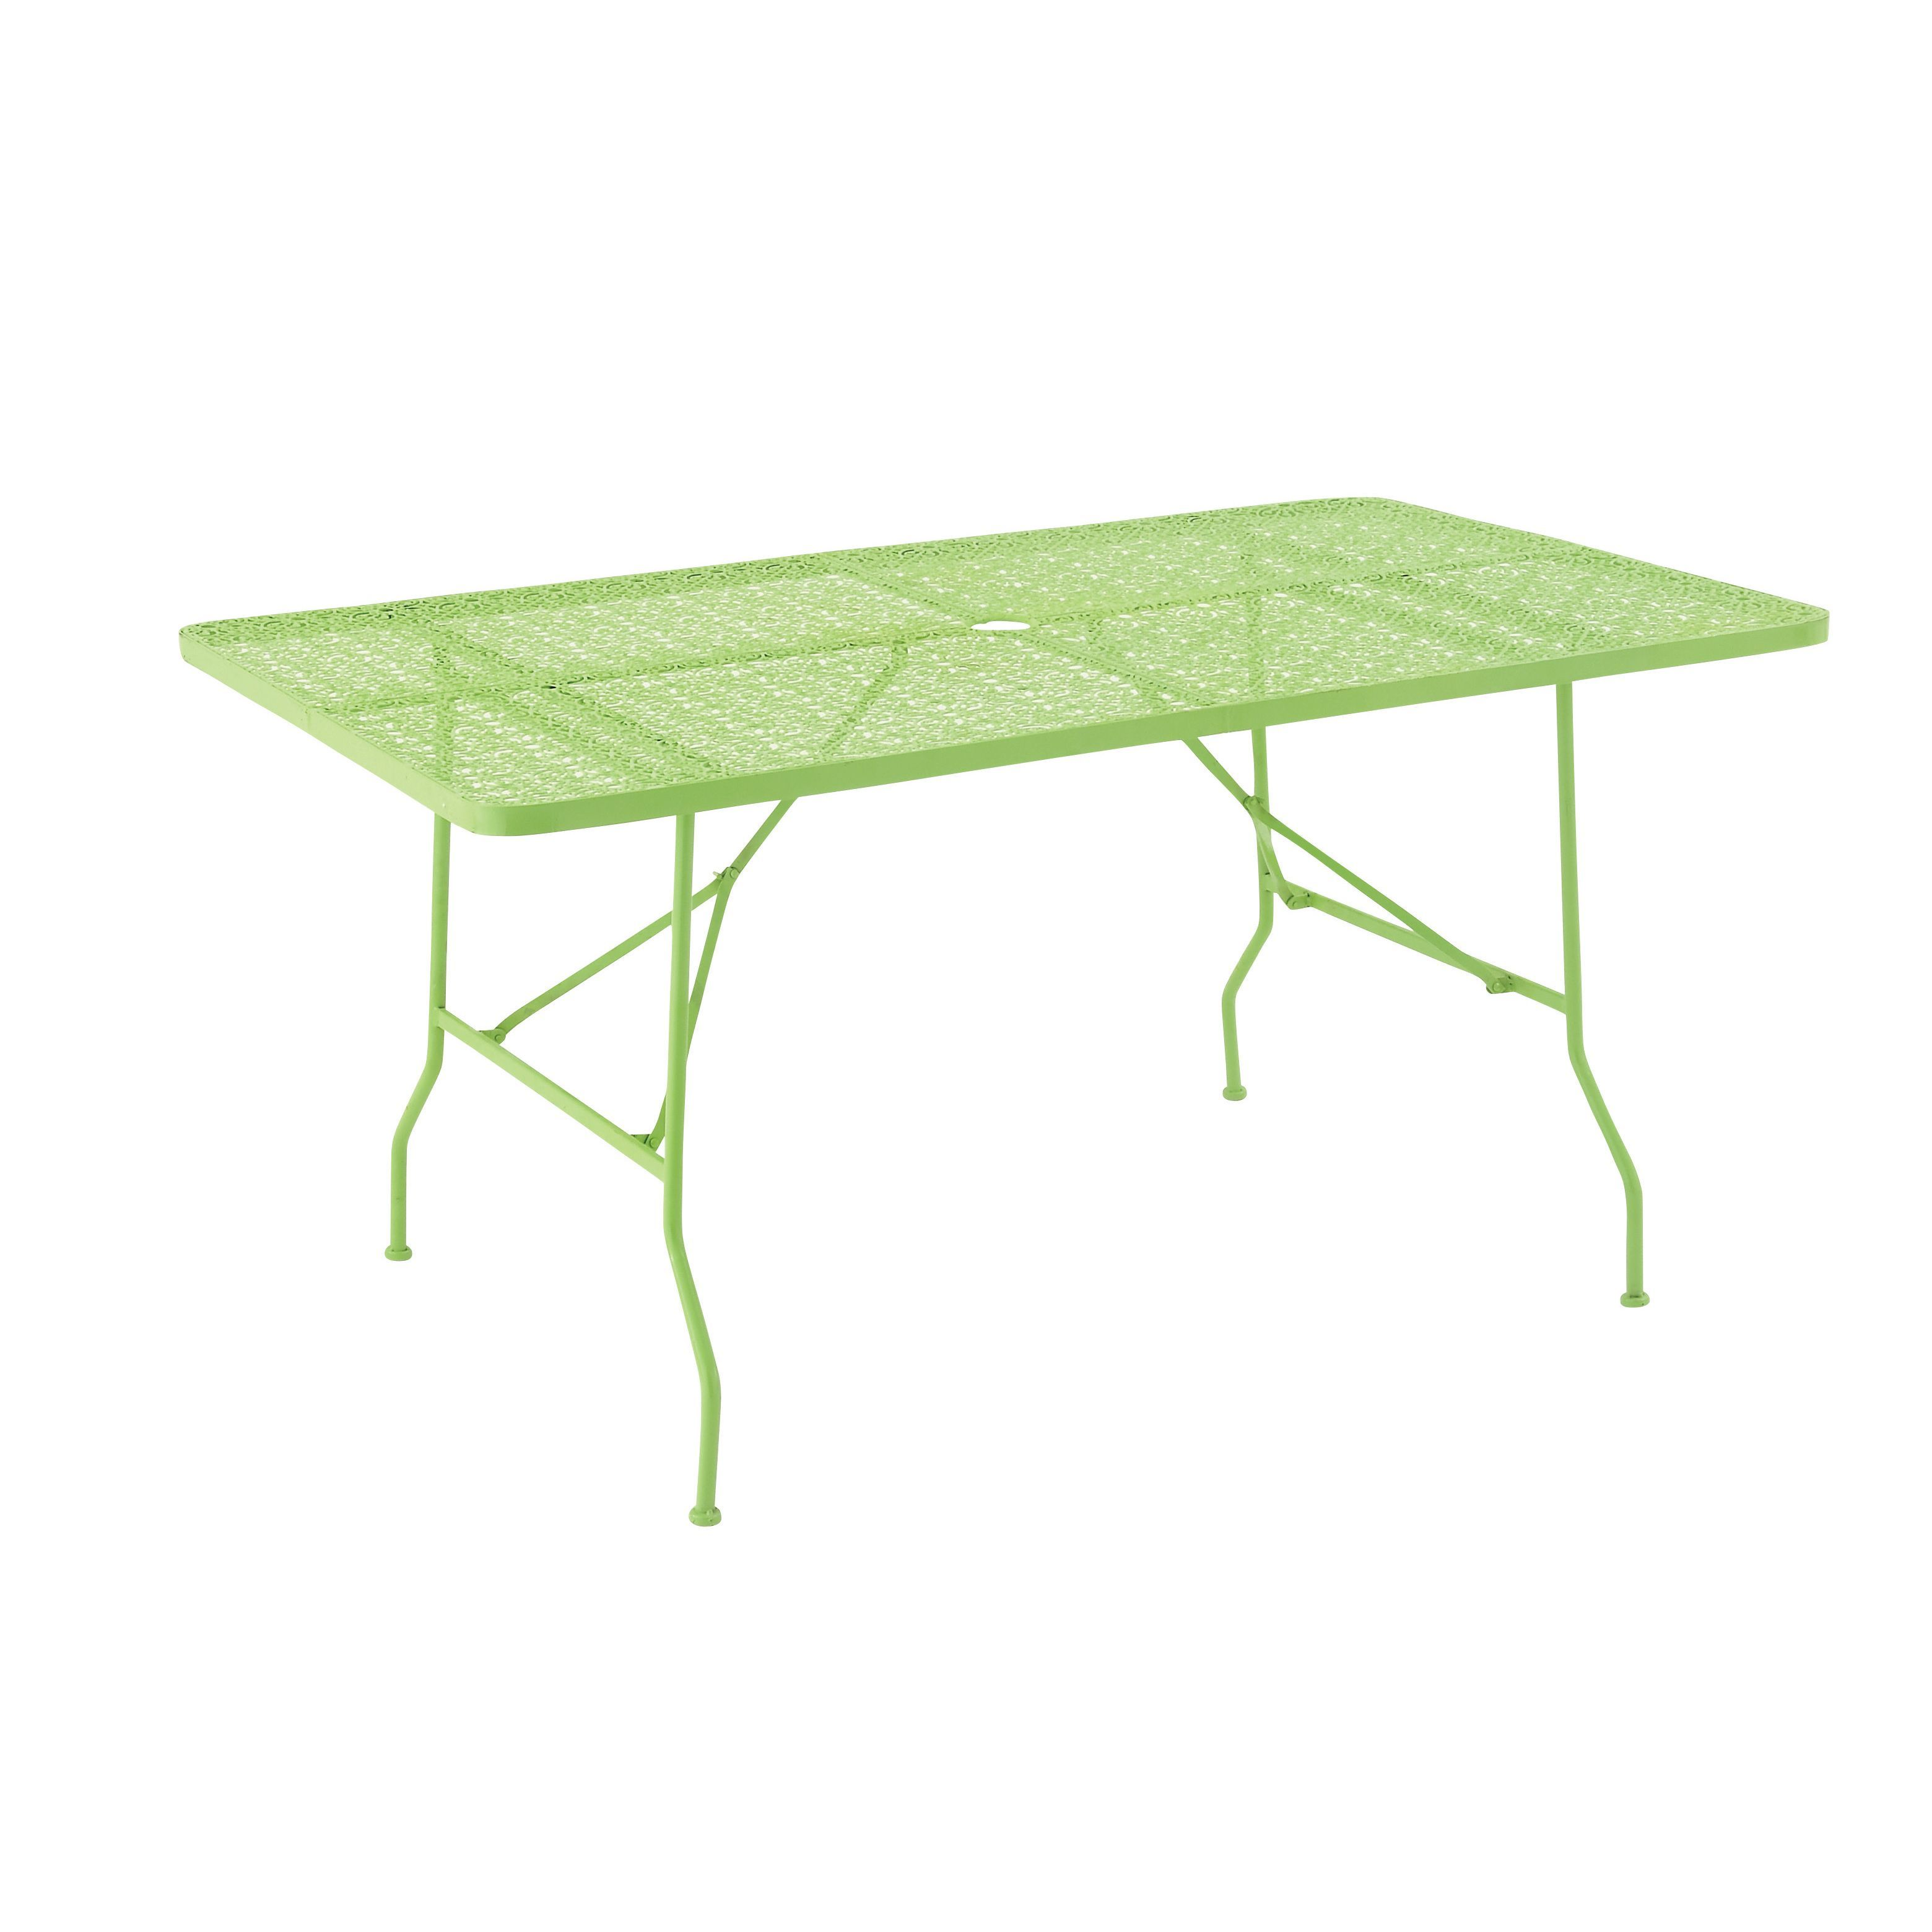 Bright green metal folding outdoor table by studio metals